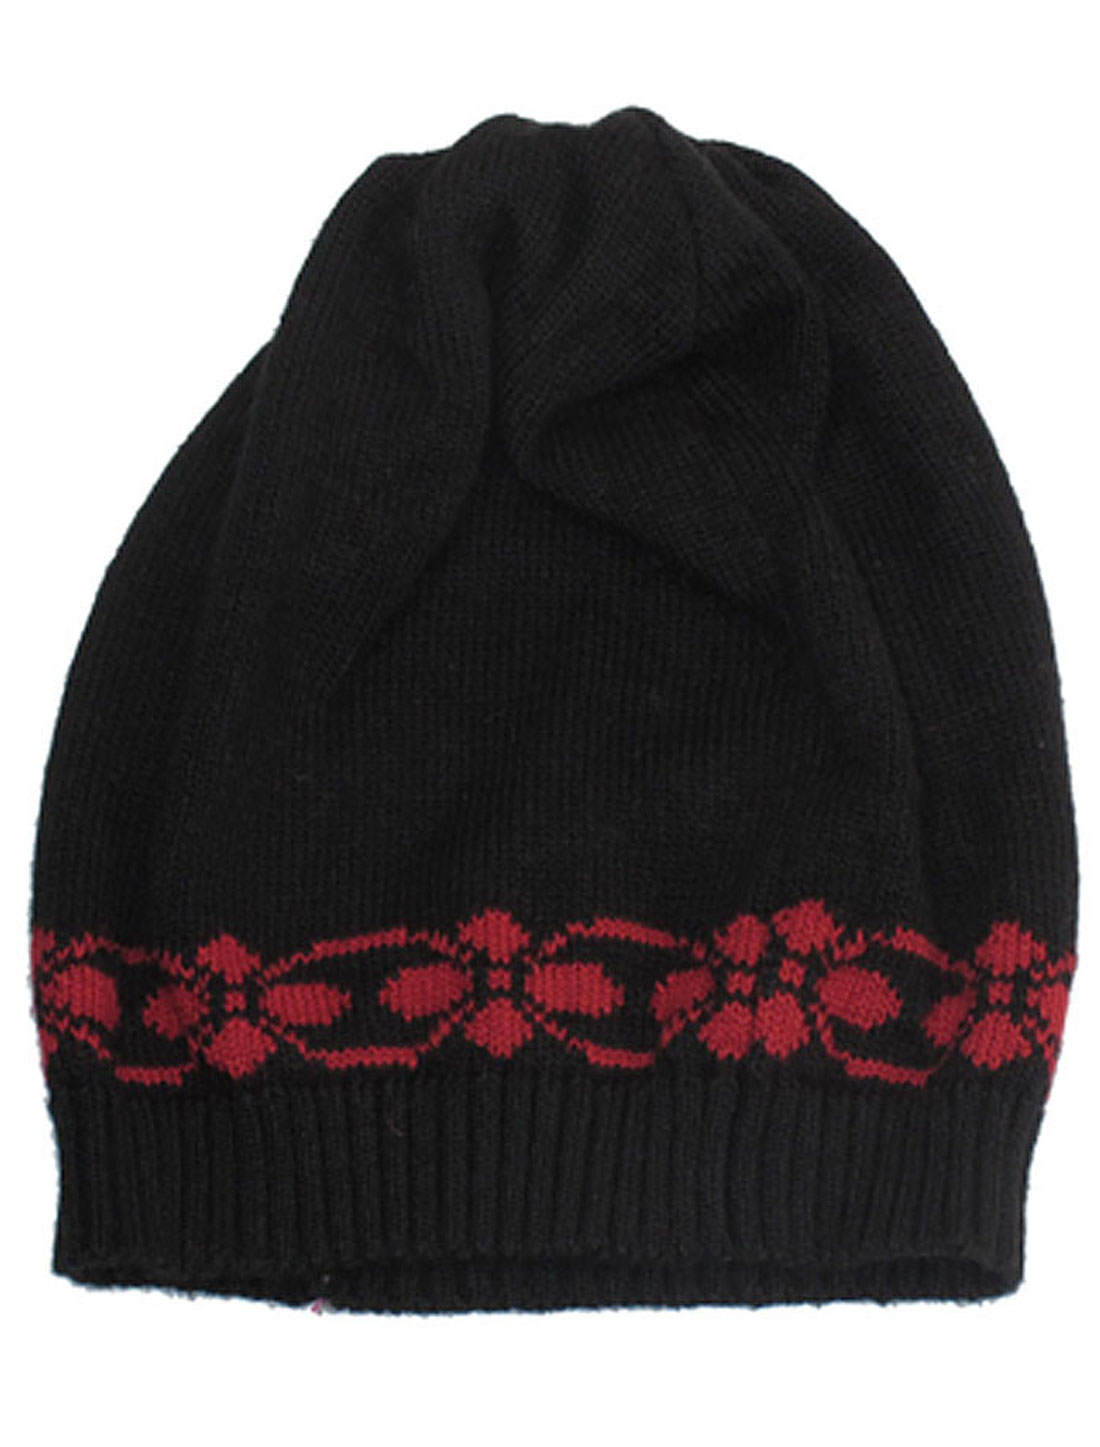 Black Warm Floral Prints Knit Beanie Hat Winter Skull Cap for Lady Women